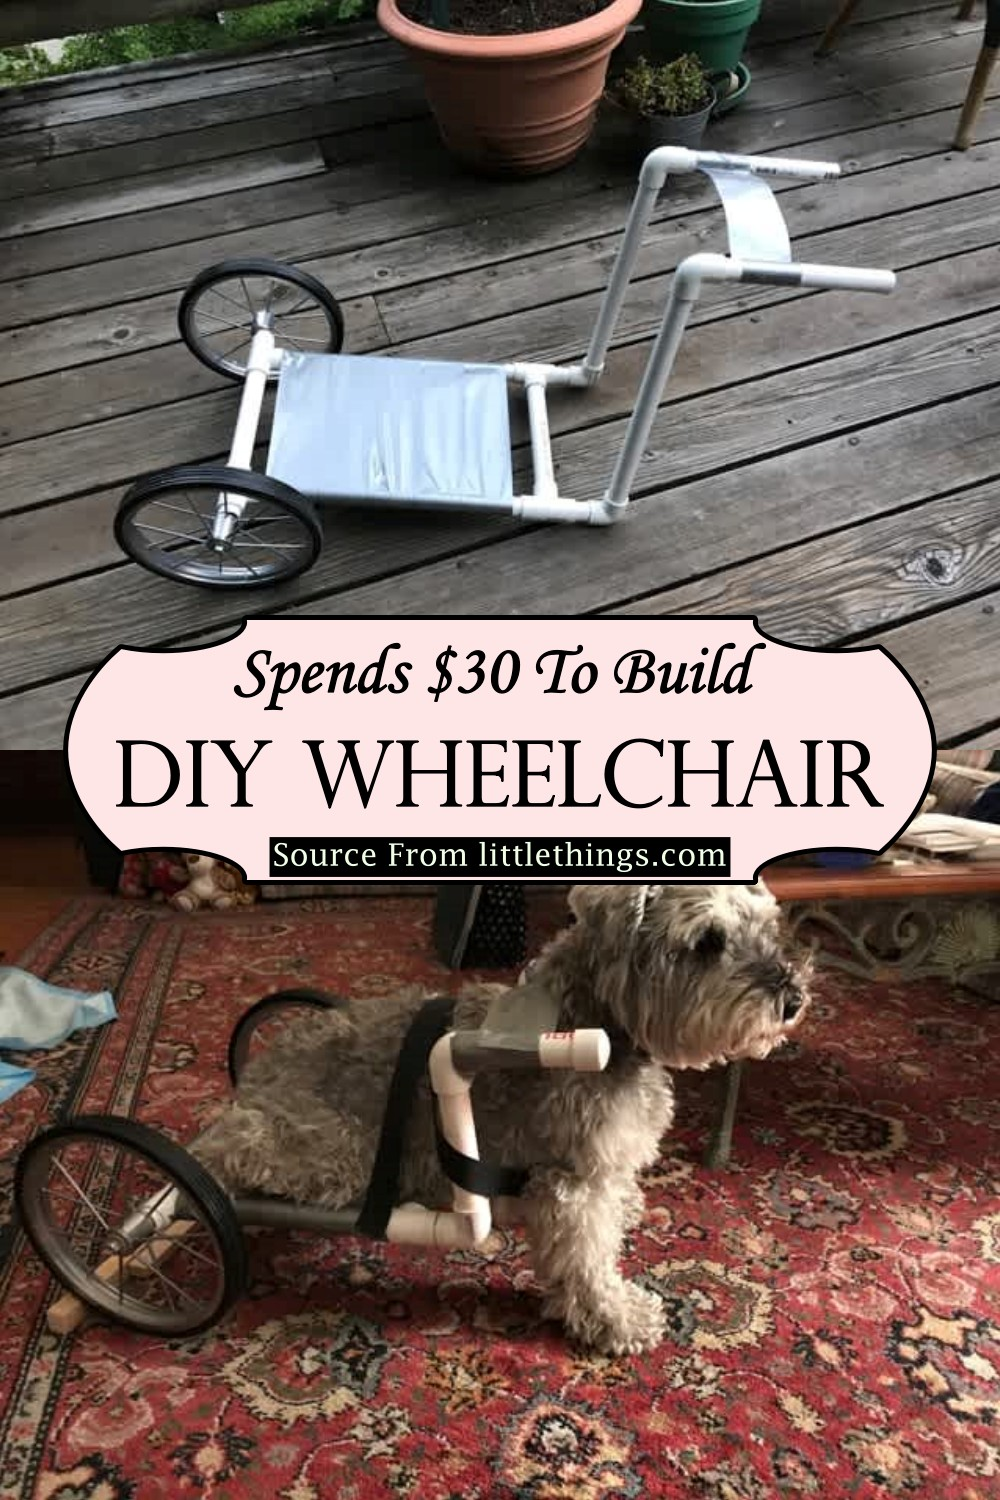 Spends $30 To Build DIY Wheelchair